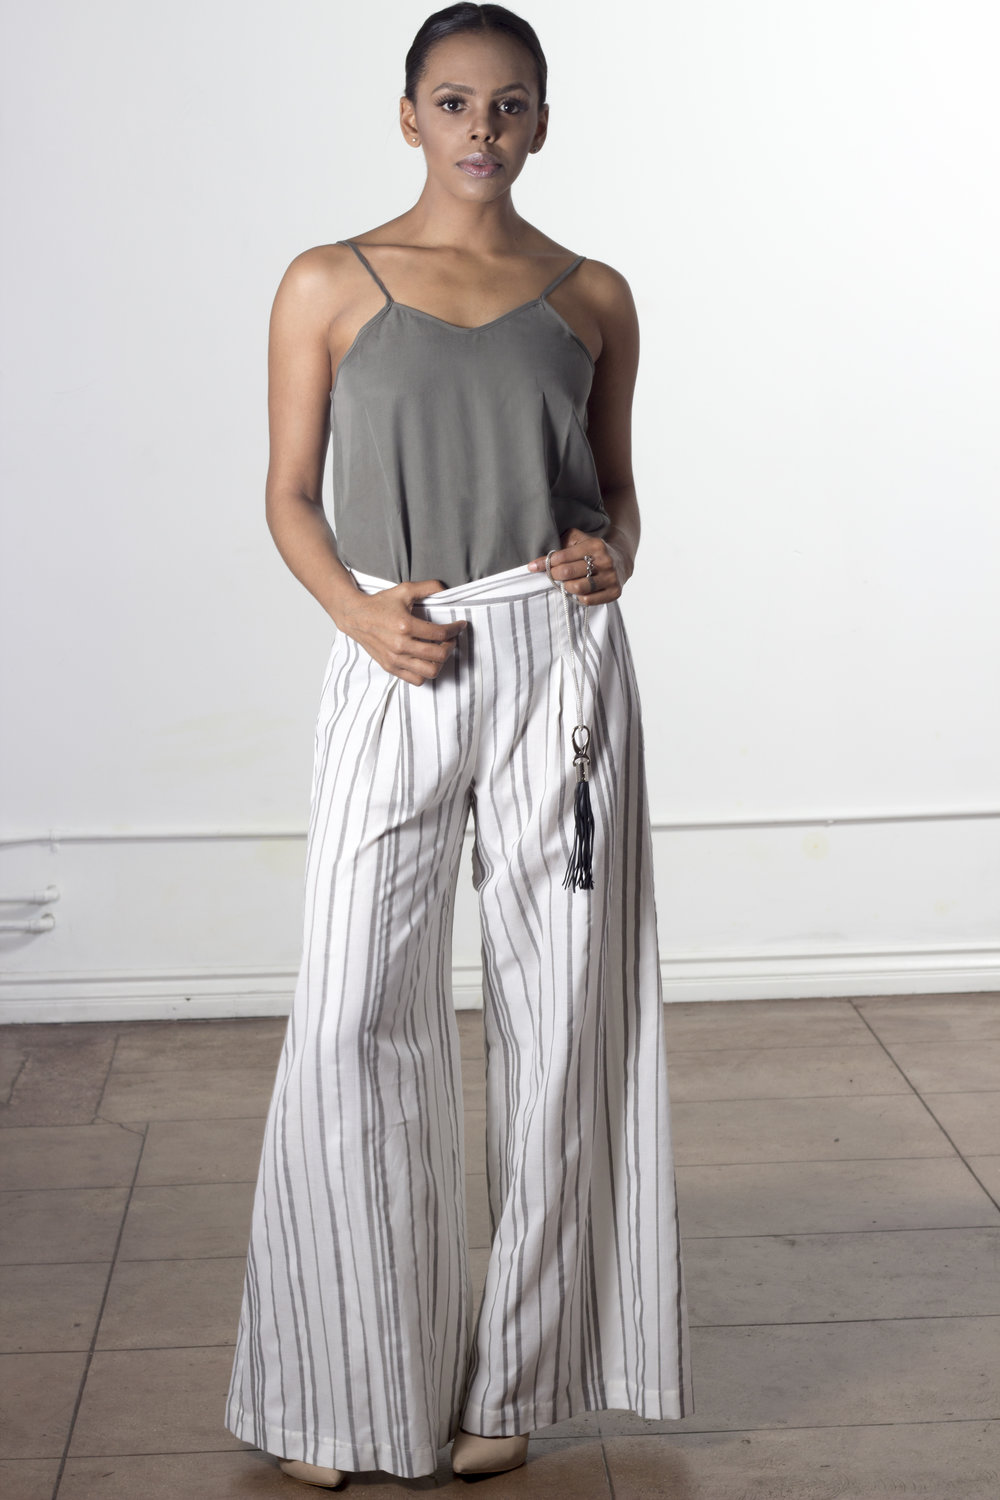 5-Jessica-Faulkner-Womens-Contemporary-Clothing-Liliana-Wide-Leg-Trousers-Jessica-Faulkner.jpg